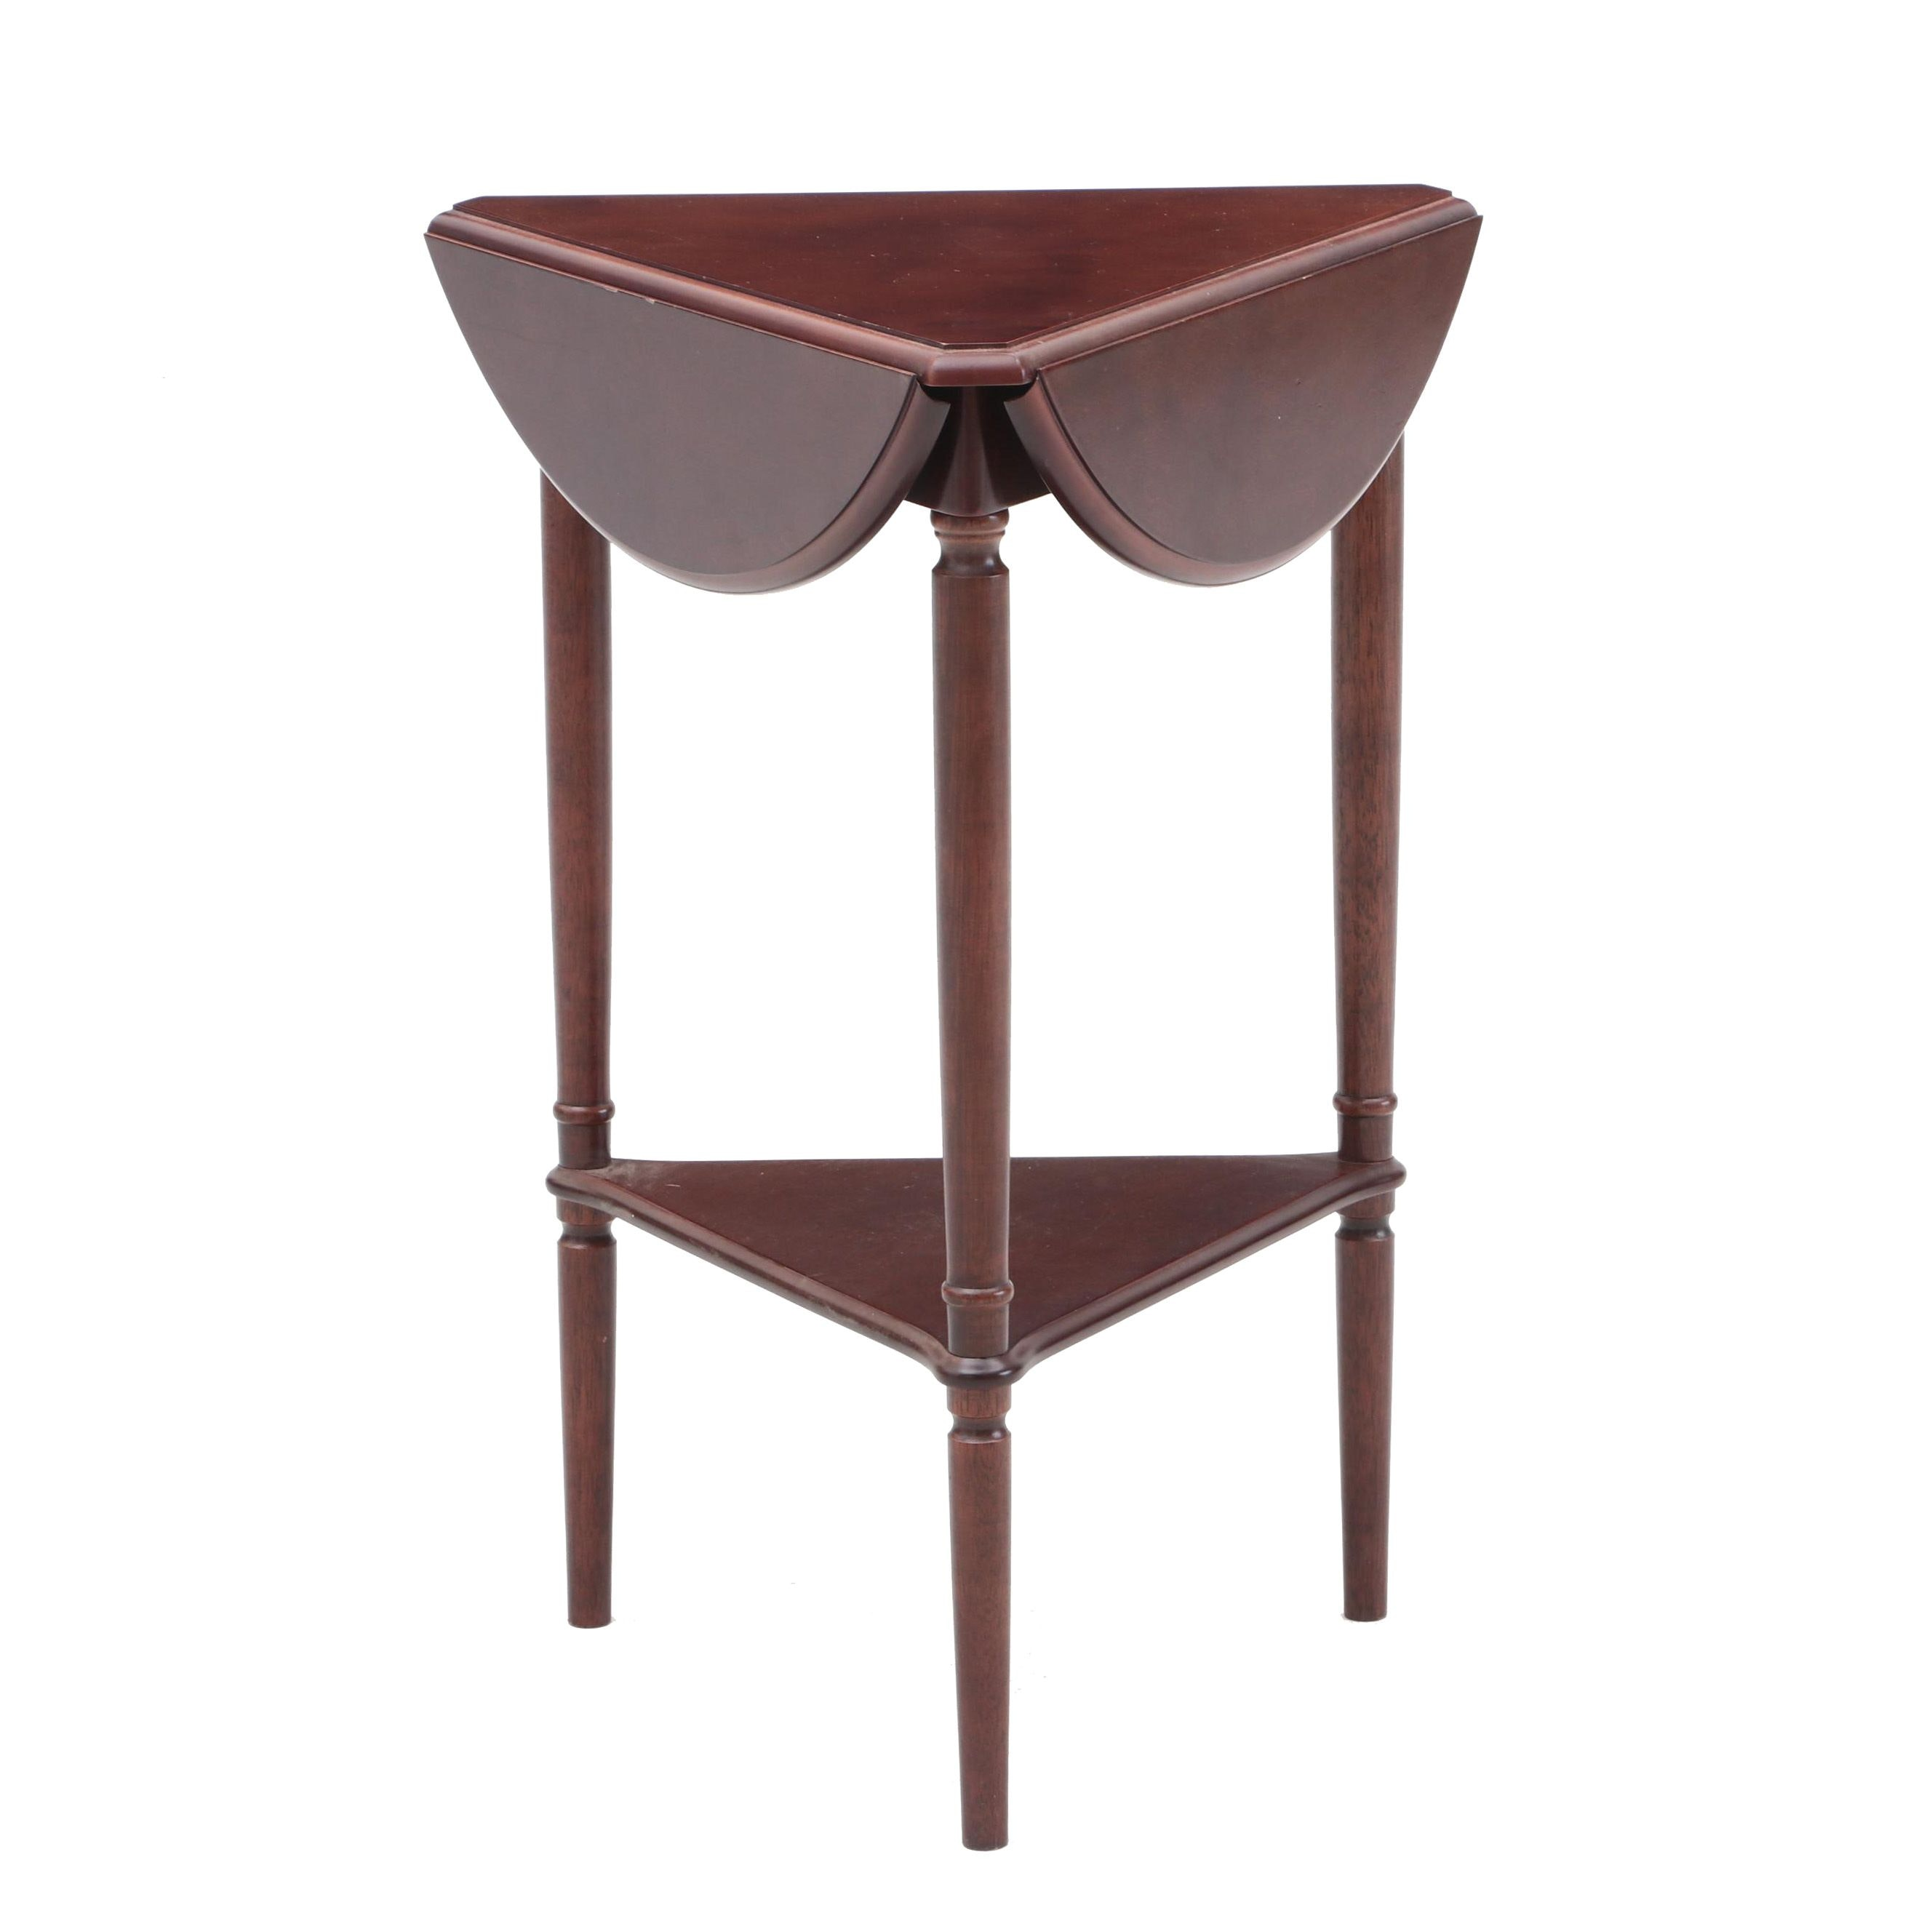 Bombay Company Drop Leaf Accent Table